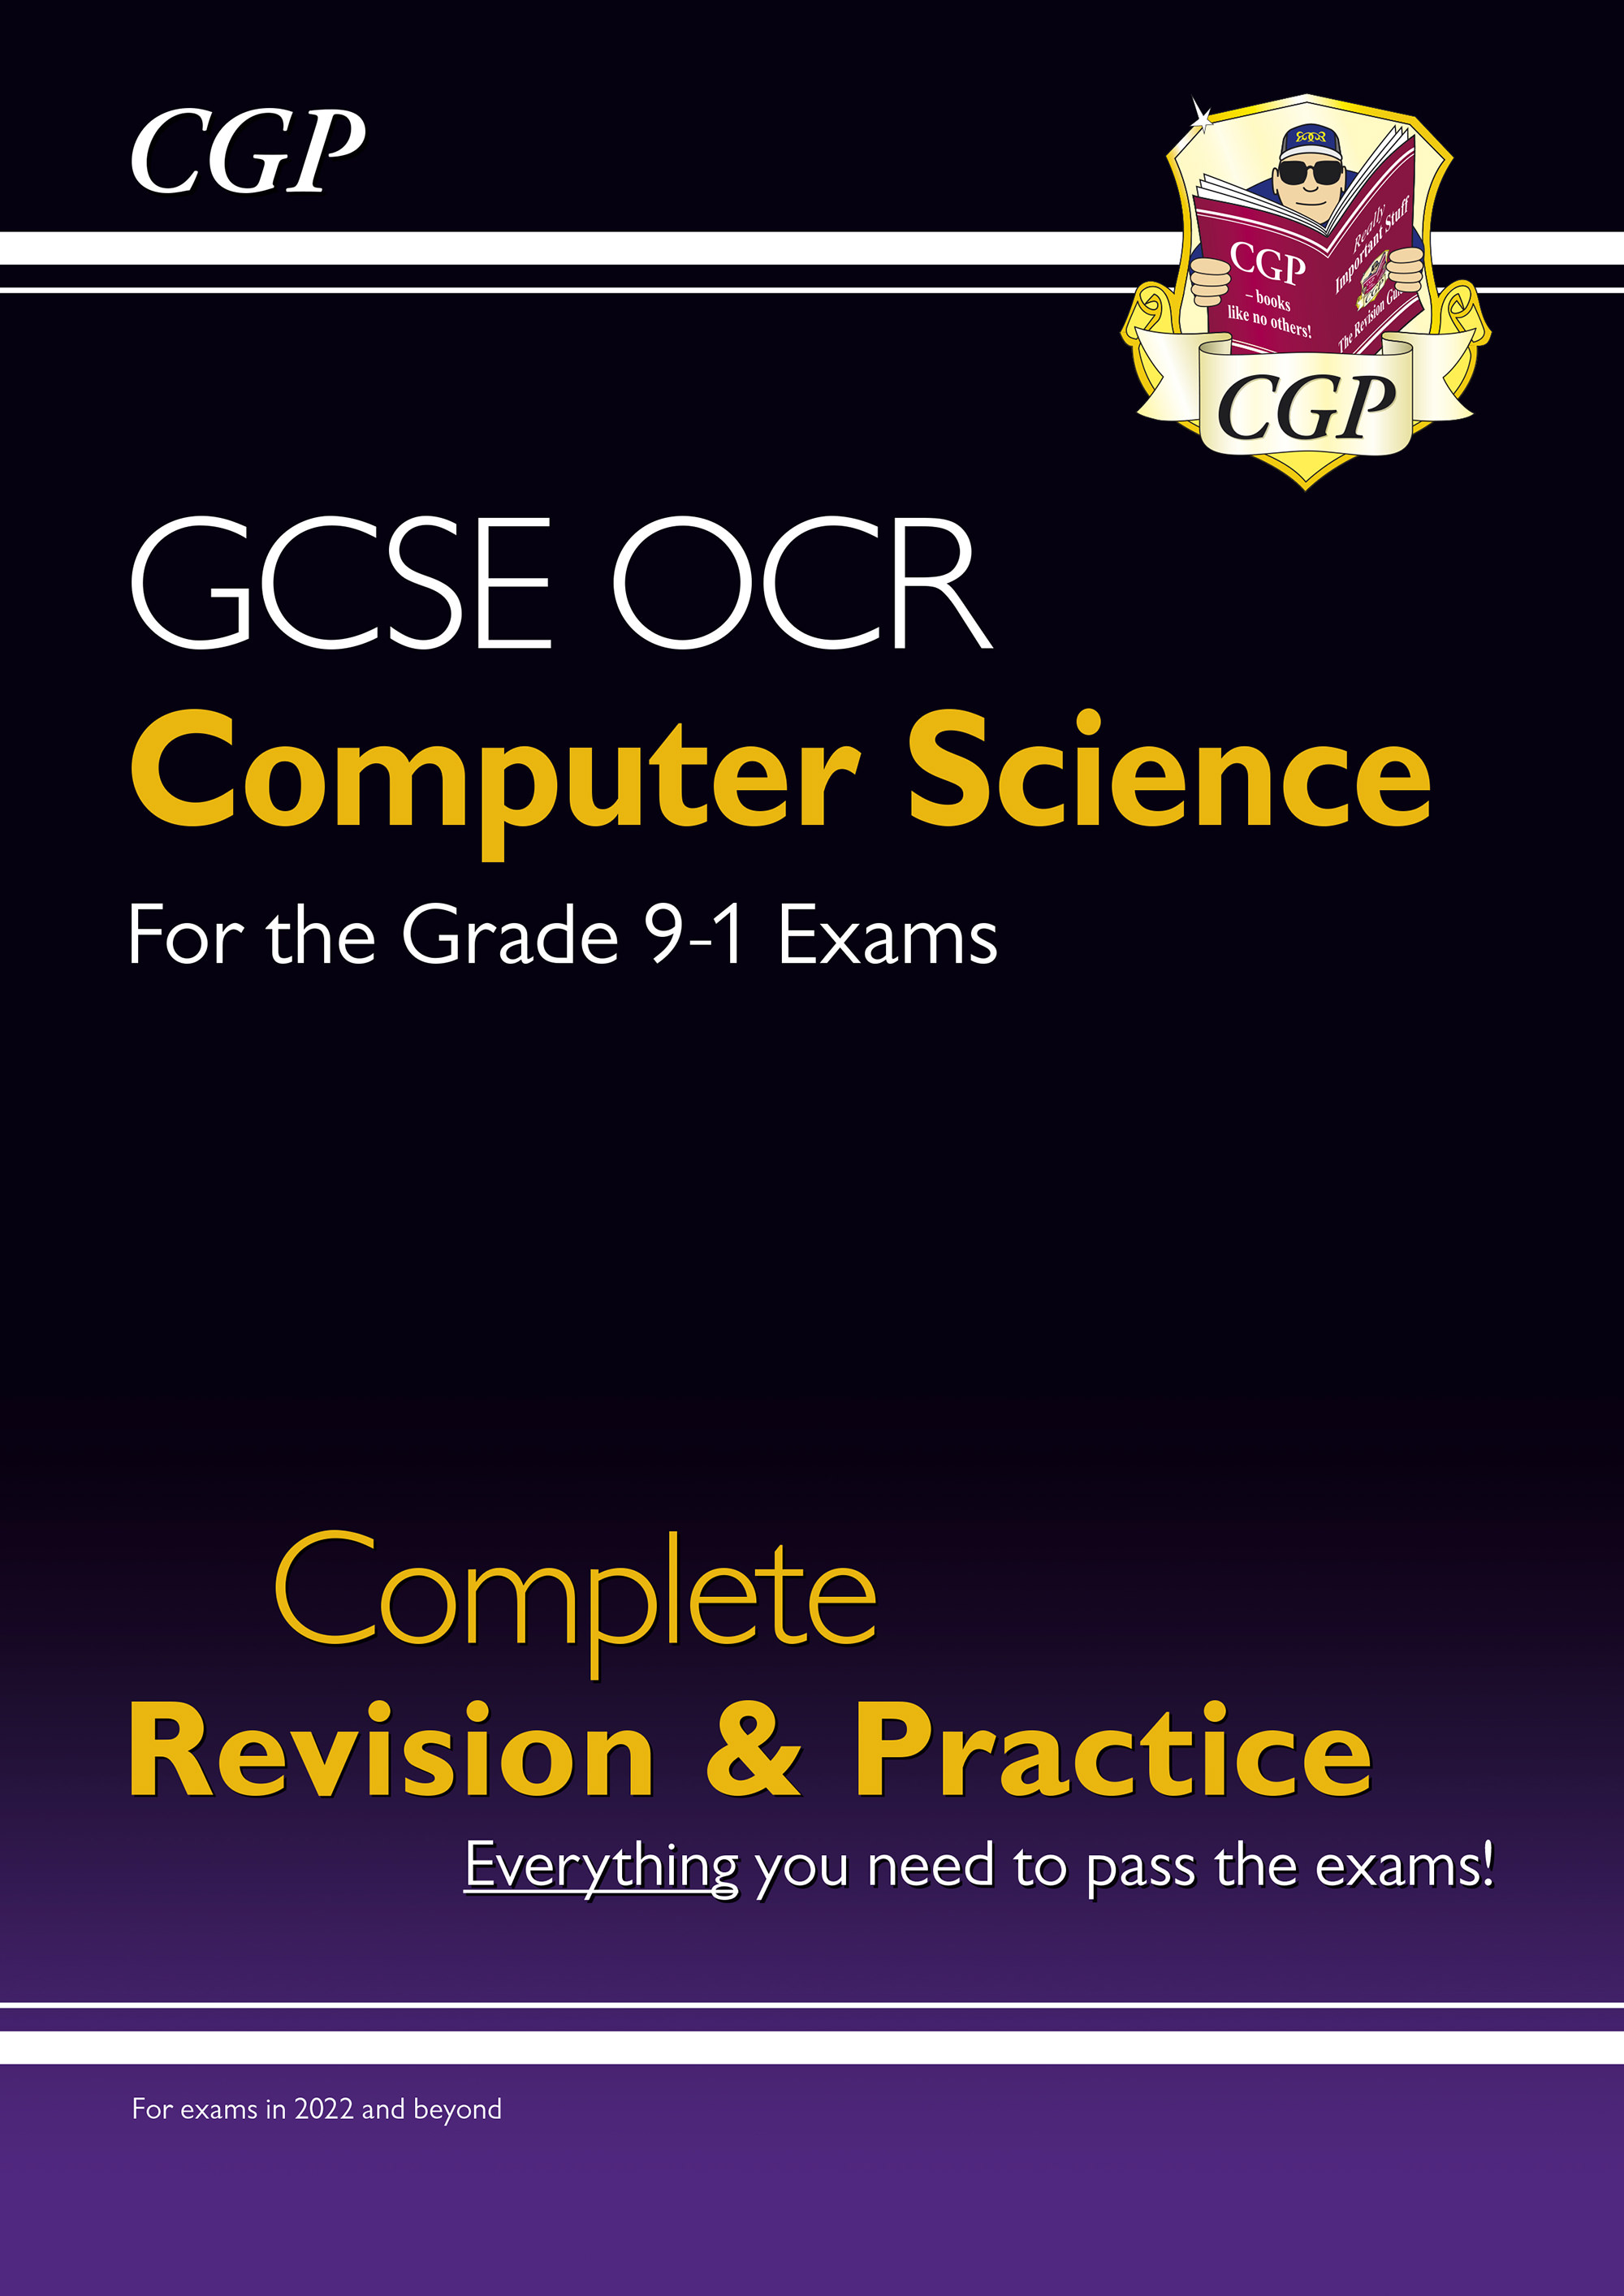 COS42D - New GCSE Computer Science OCR Complete Revision & Practice - Grade 9-1 - Online Edition